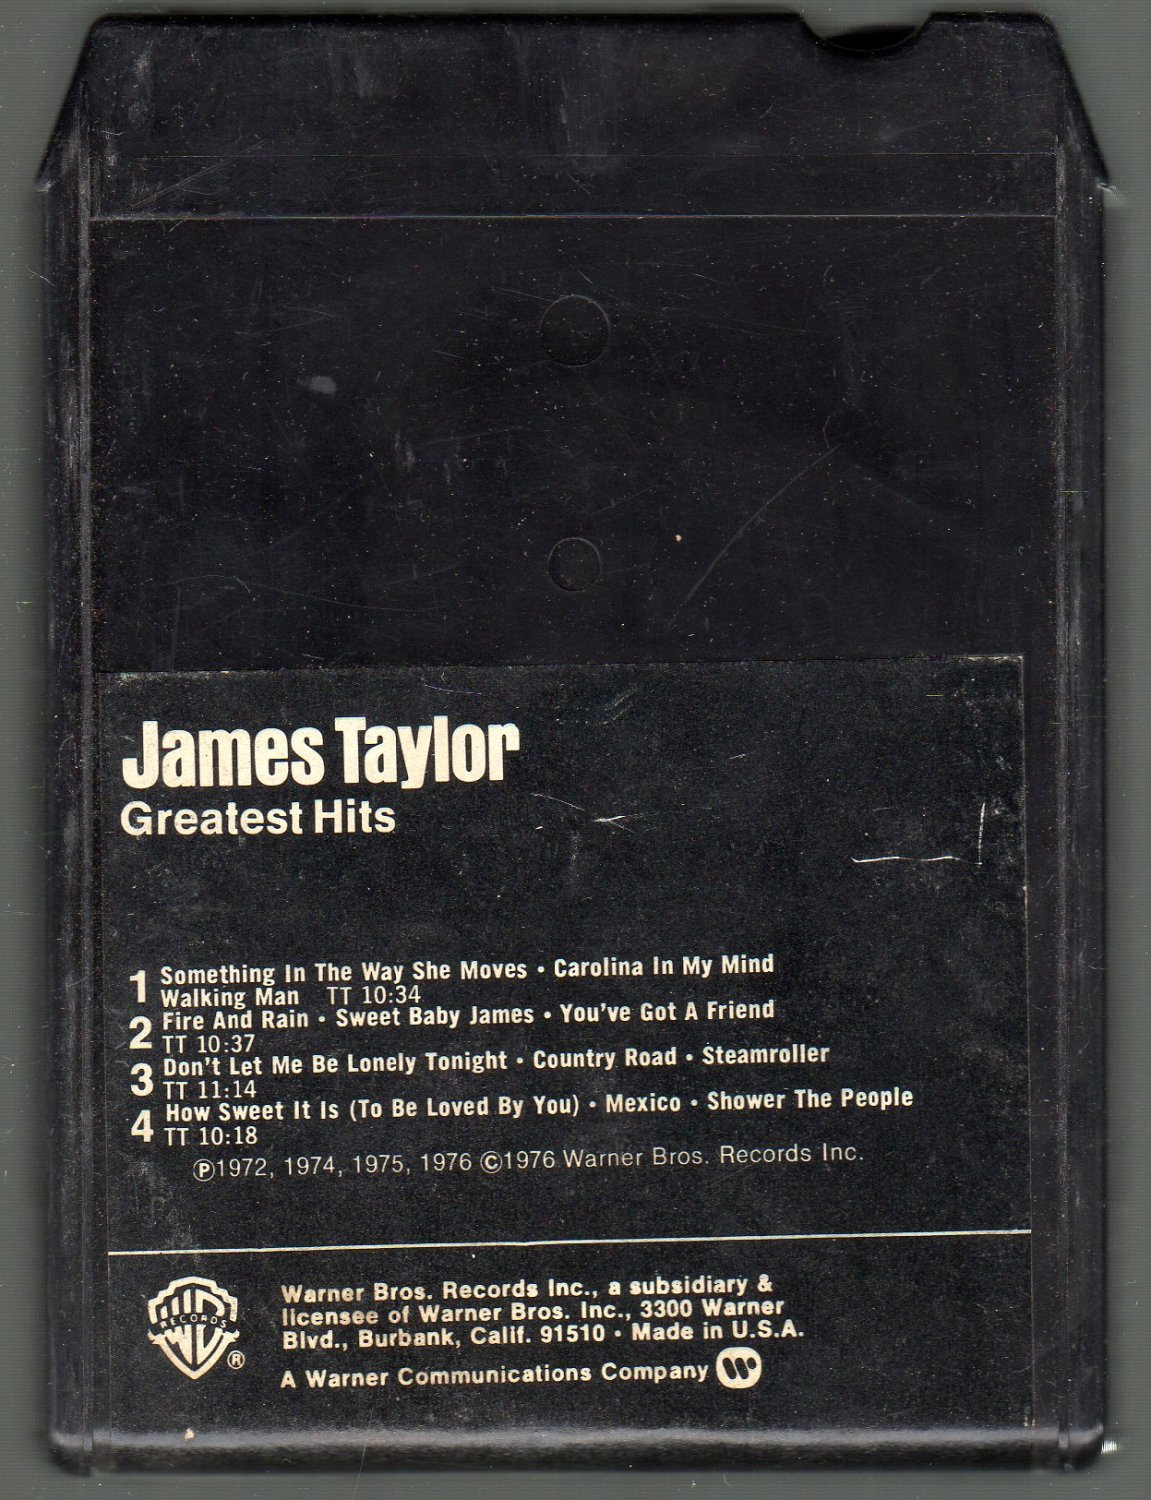 James Taylor - Greatest Hits SOLD 8-track tape